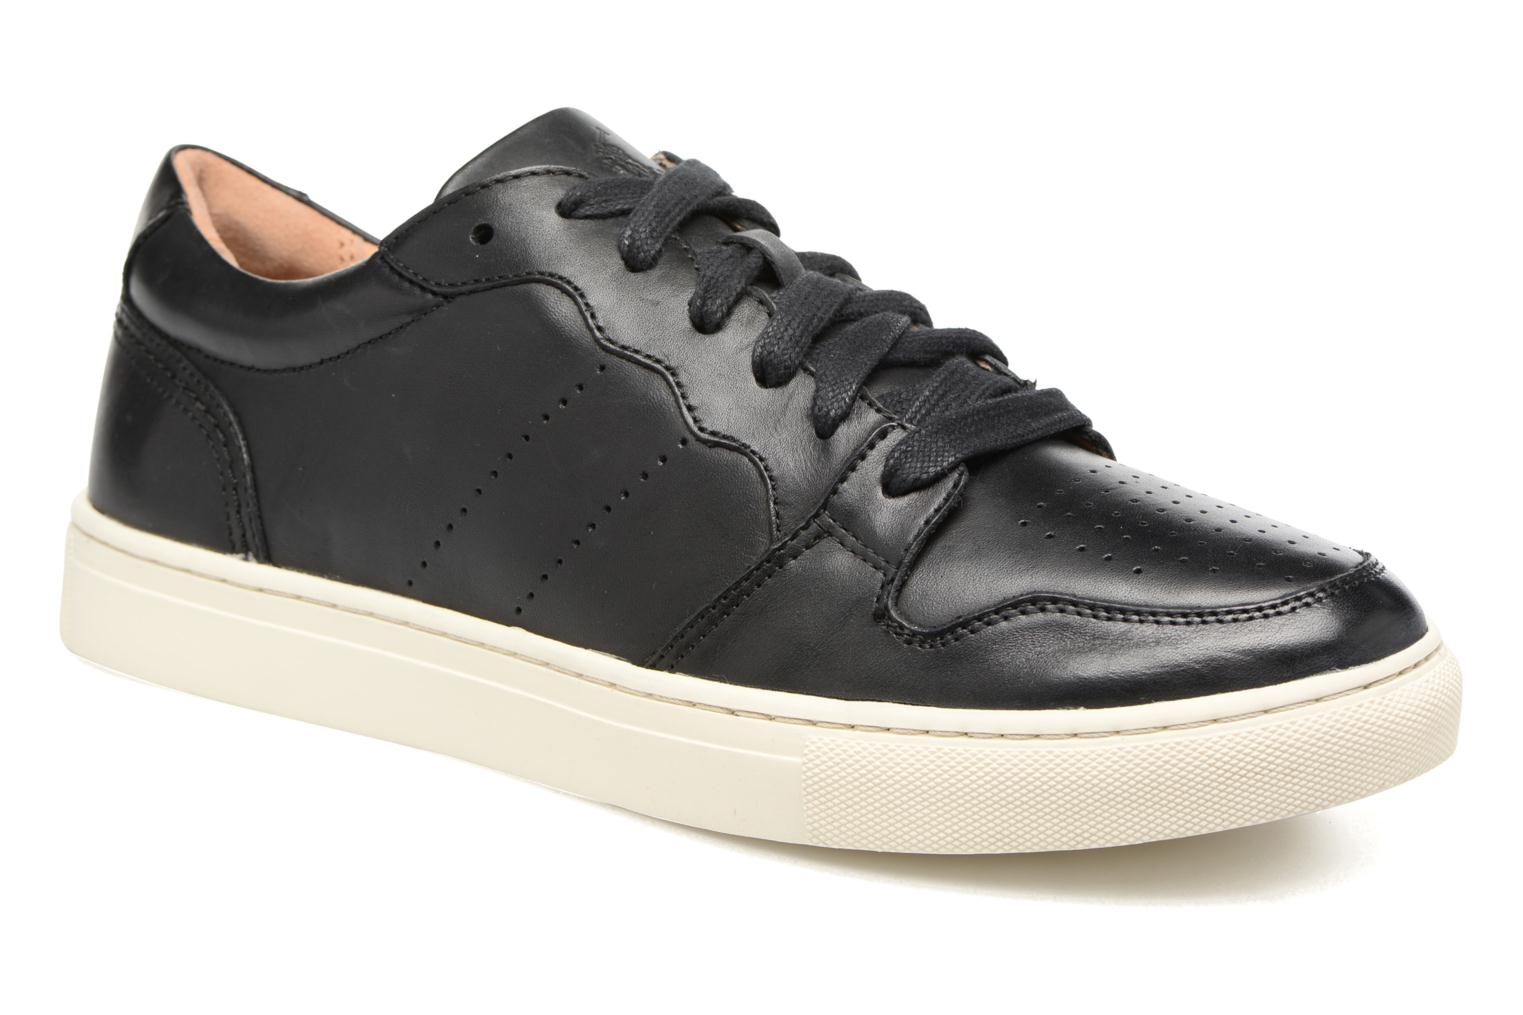 Jeston-Sneakers-Athletic Shoe by Polo Ralph LaurenRebajas - 20%